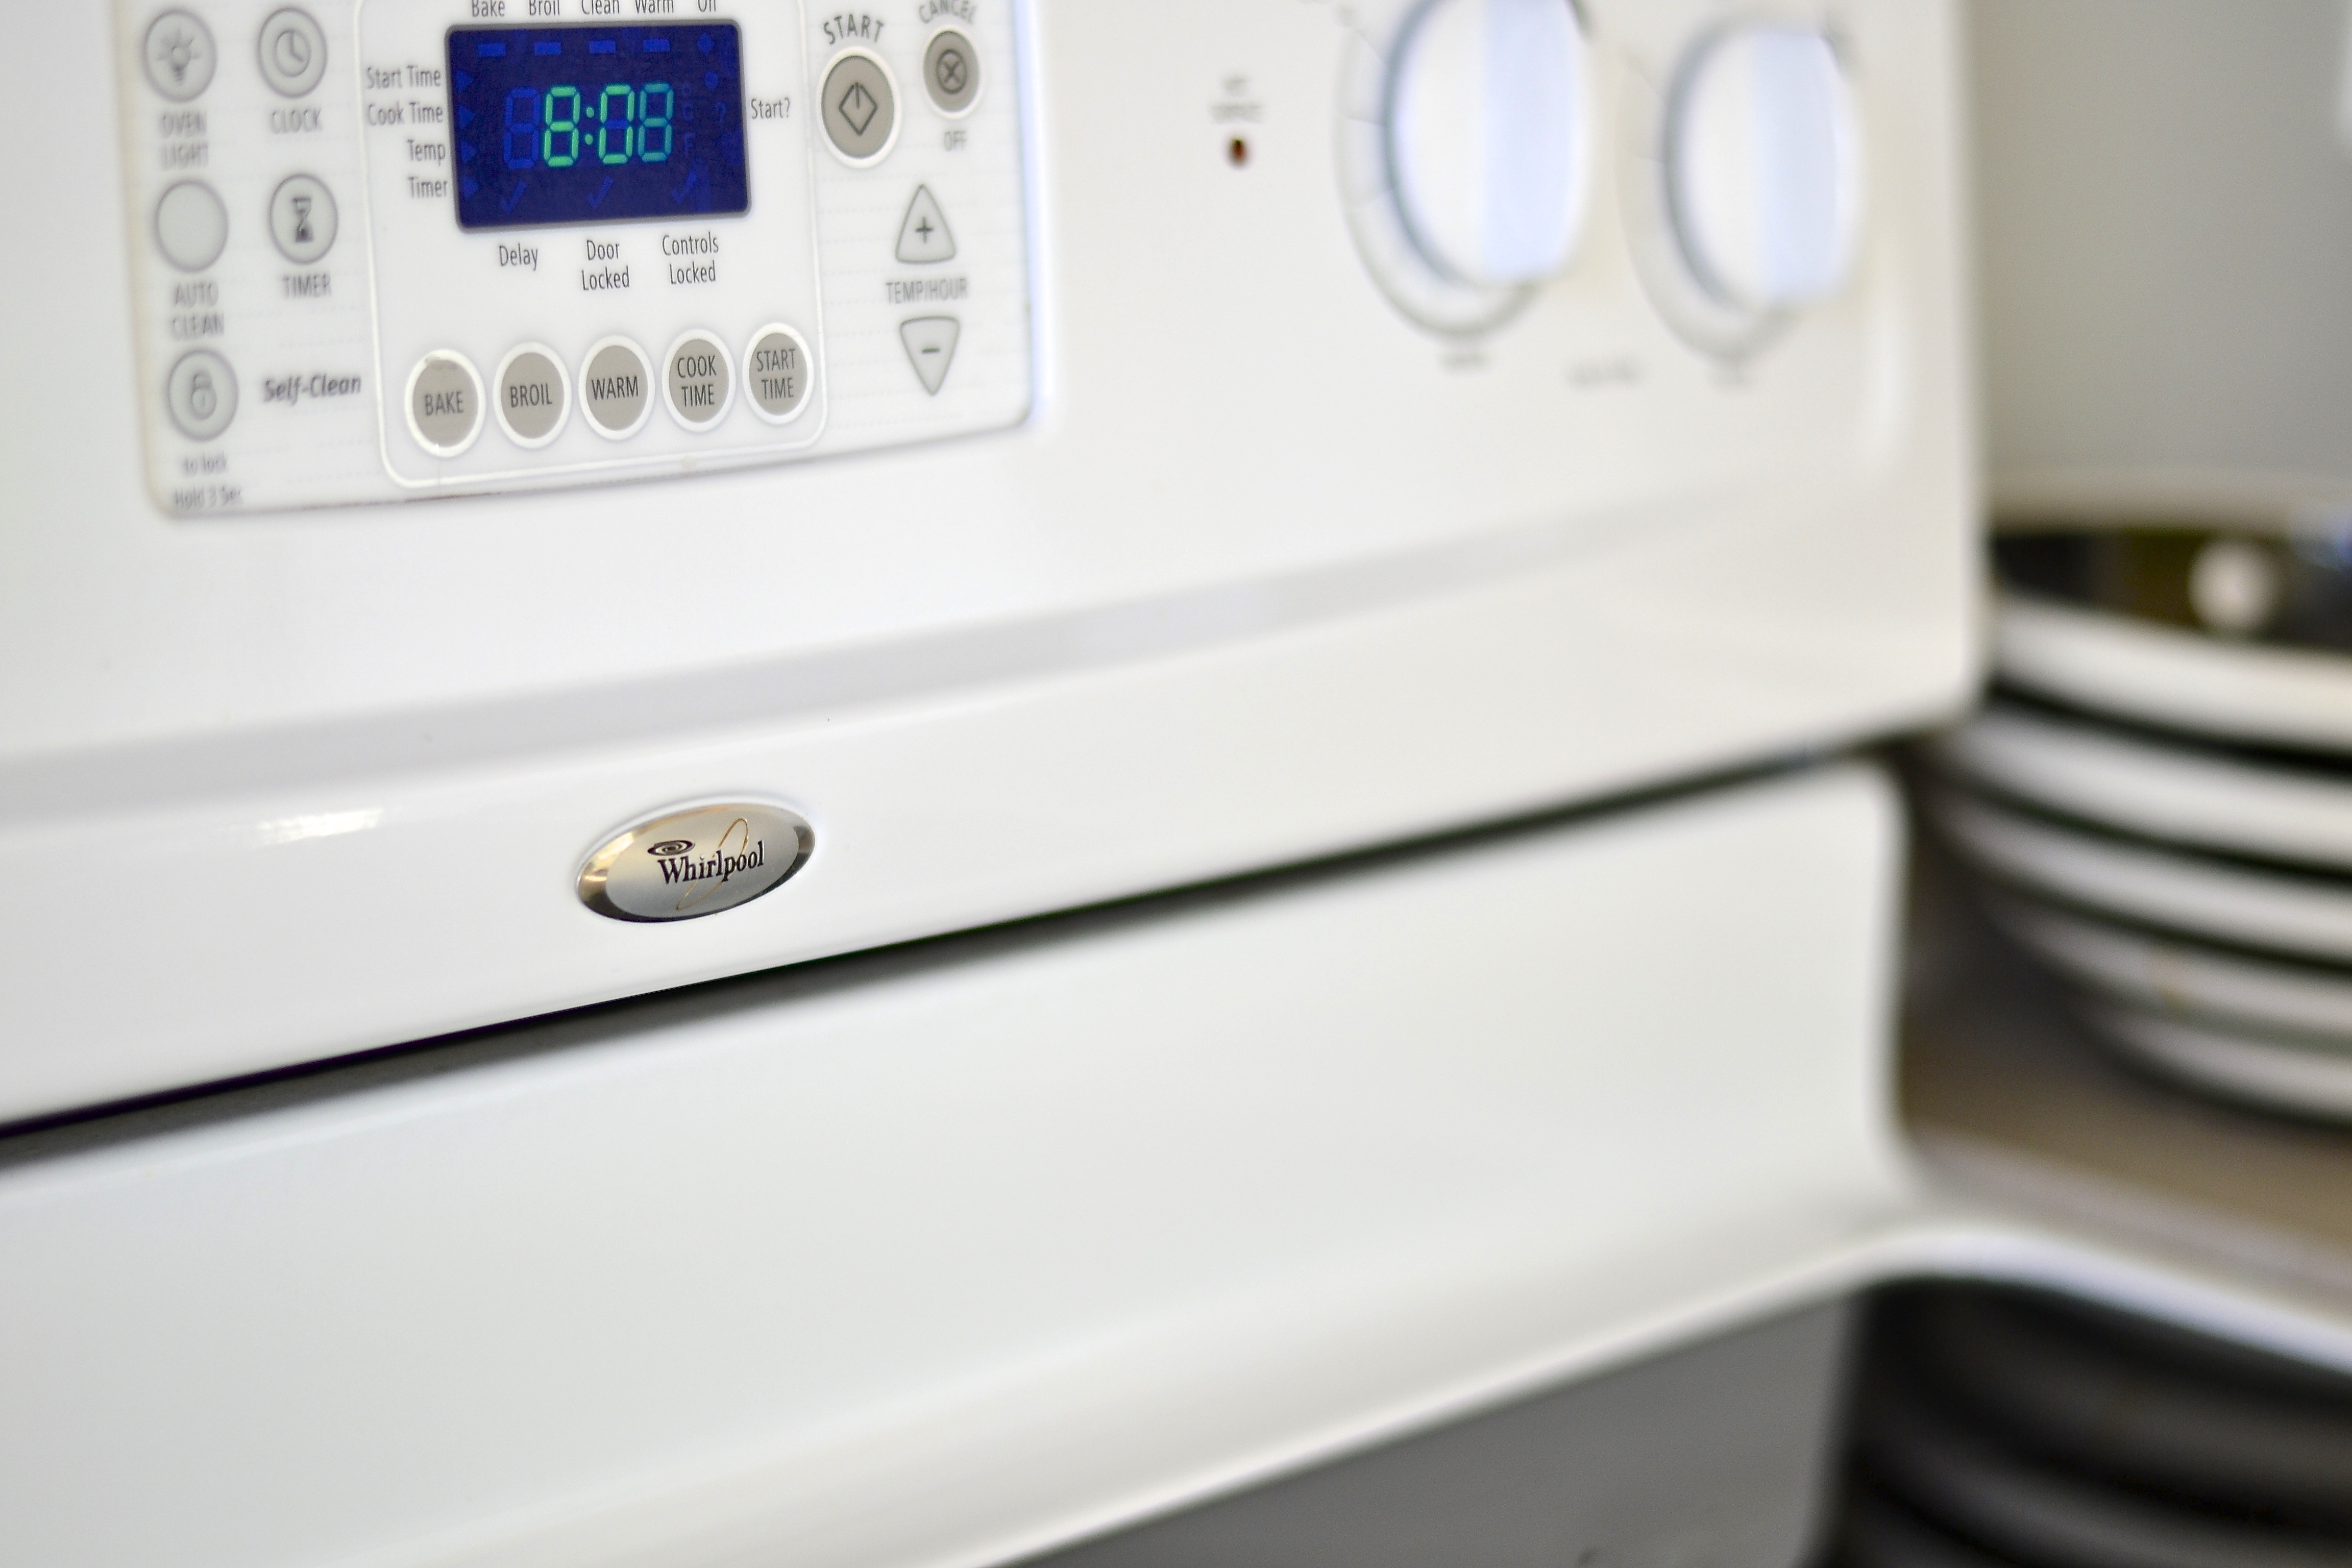 How to Clean a Whirlpool Self-Cleaning Oven | LEAFtv